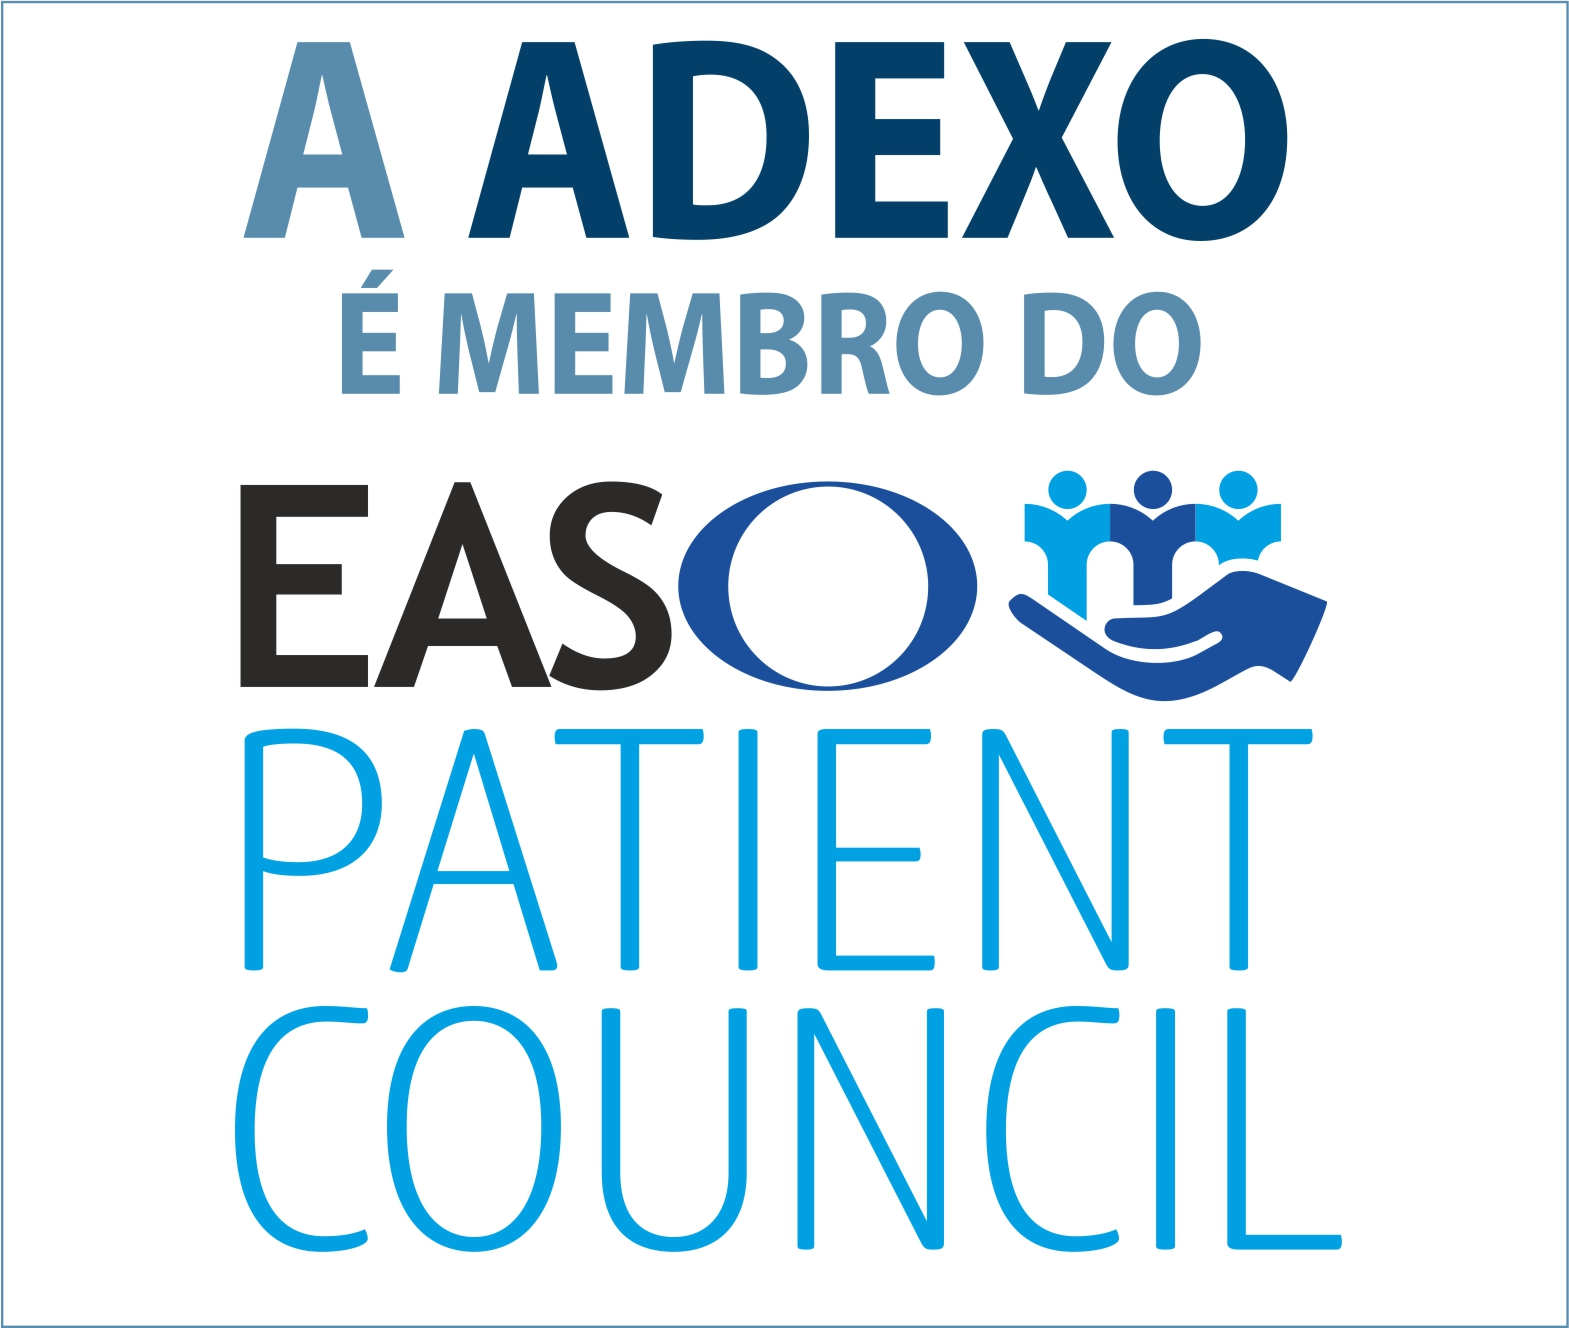 Adexo Membro Patient Council